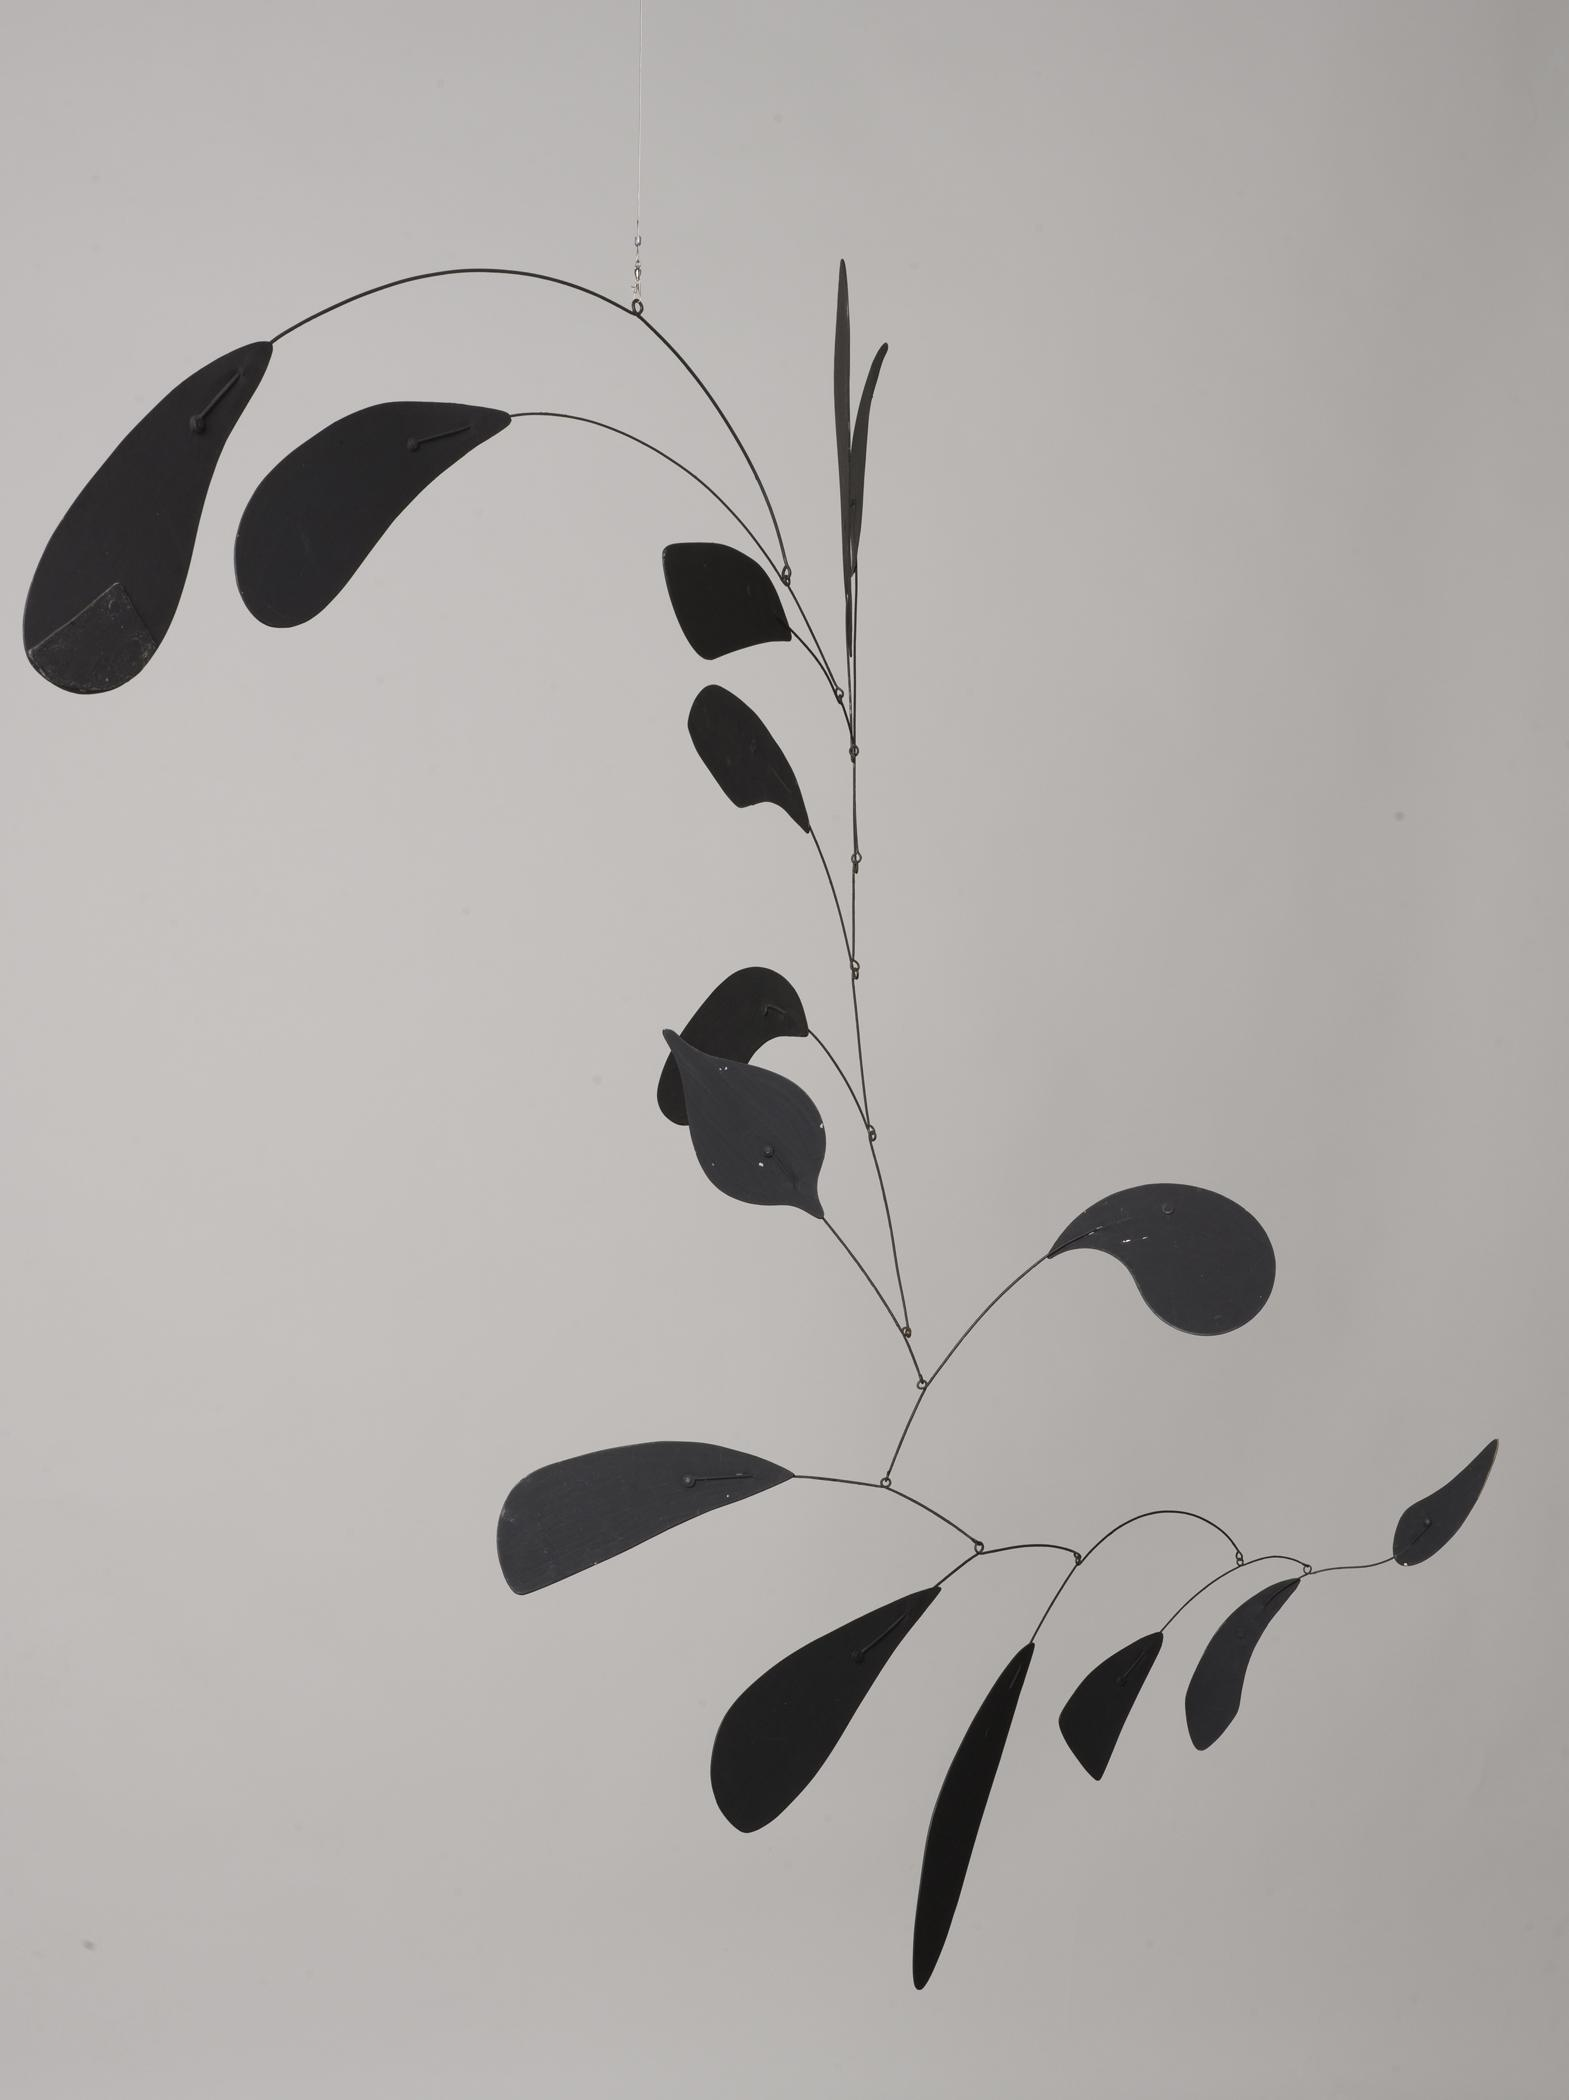 A black mobile made of wire and metal is suspended in air. The tips of the wire are adorned with leaf-like appendages.